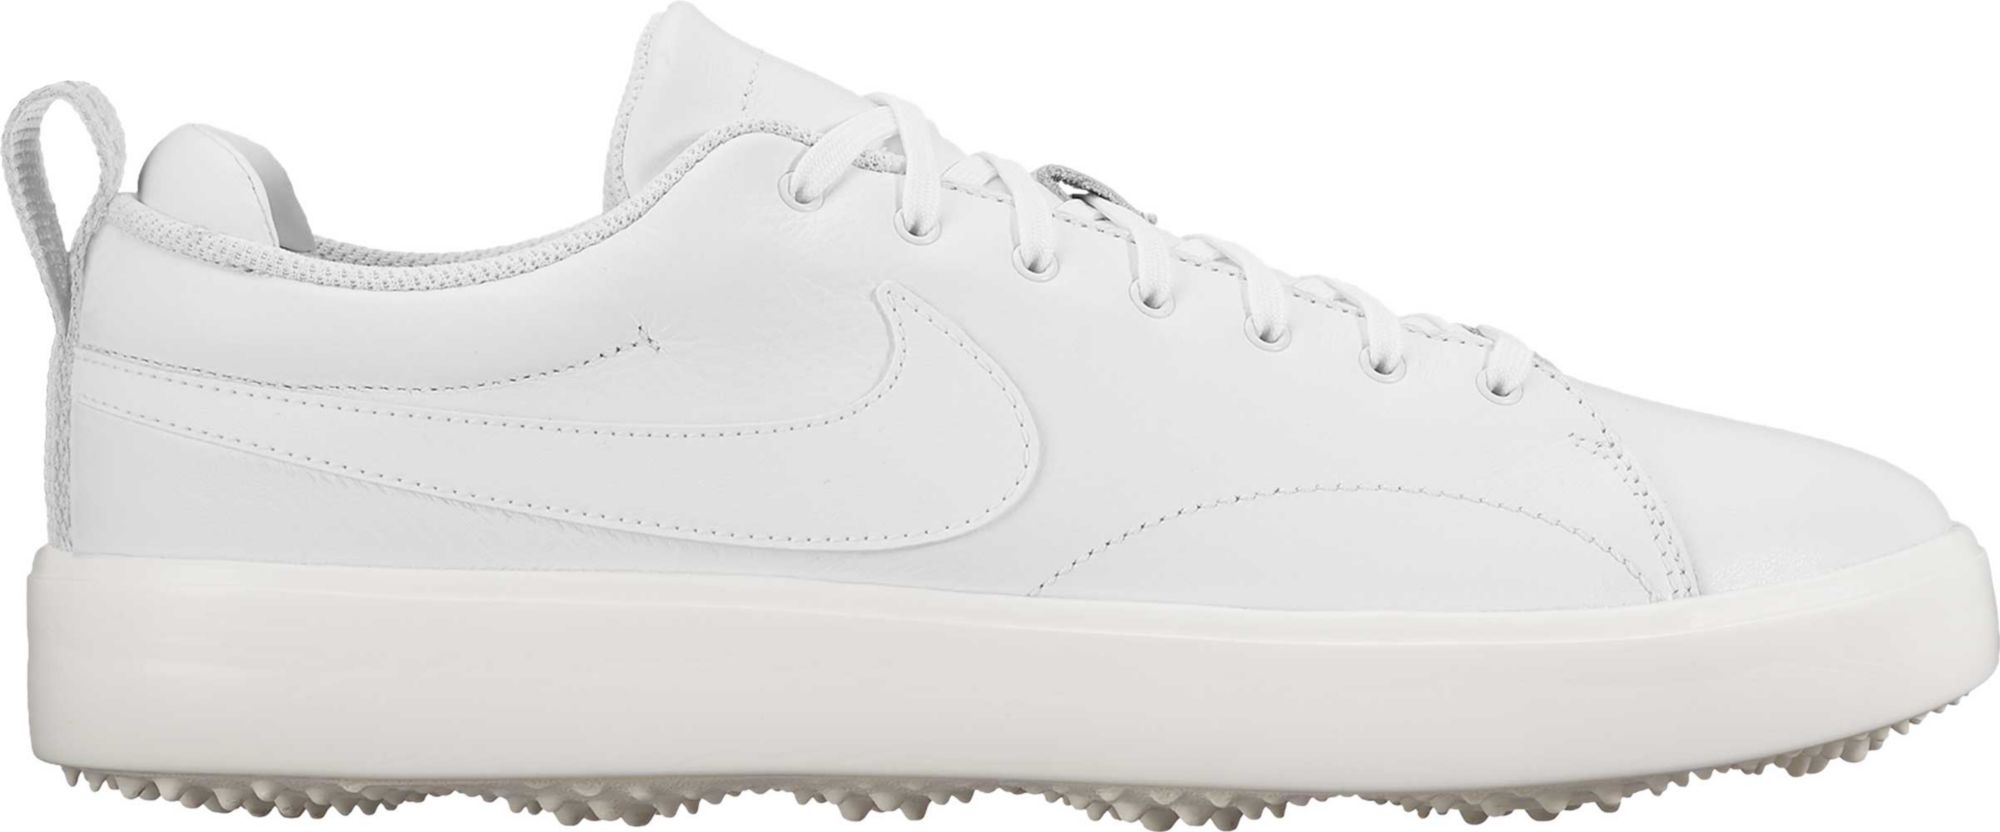 Product Image �� Nike Men\u0027s Course Classic Golf Shoes